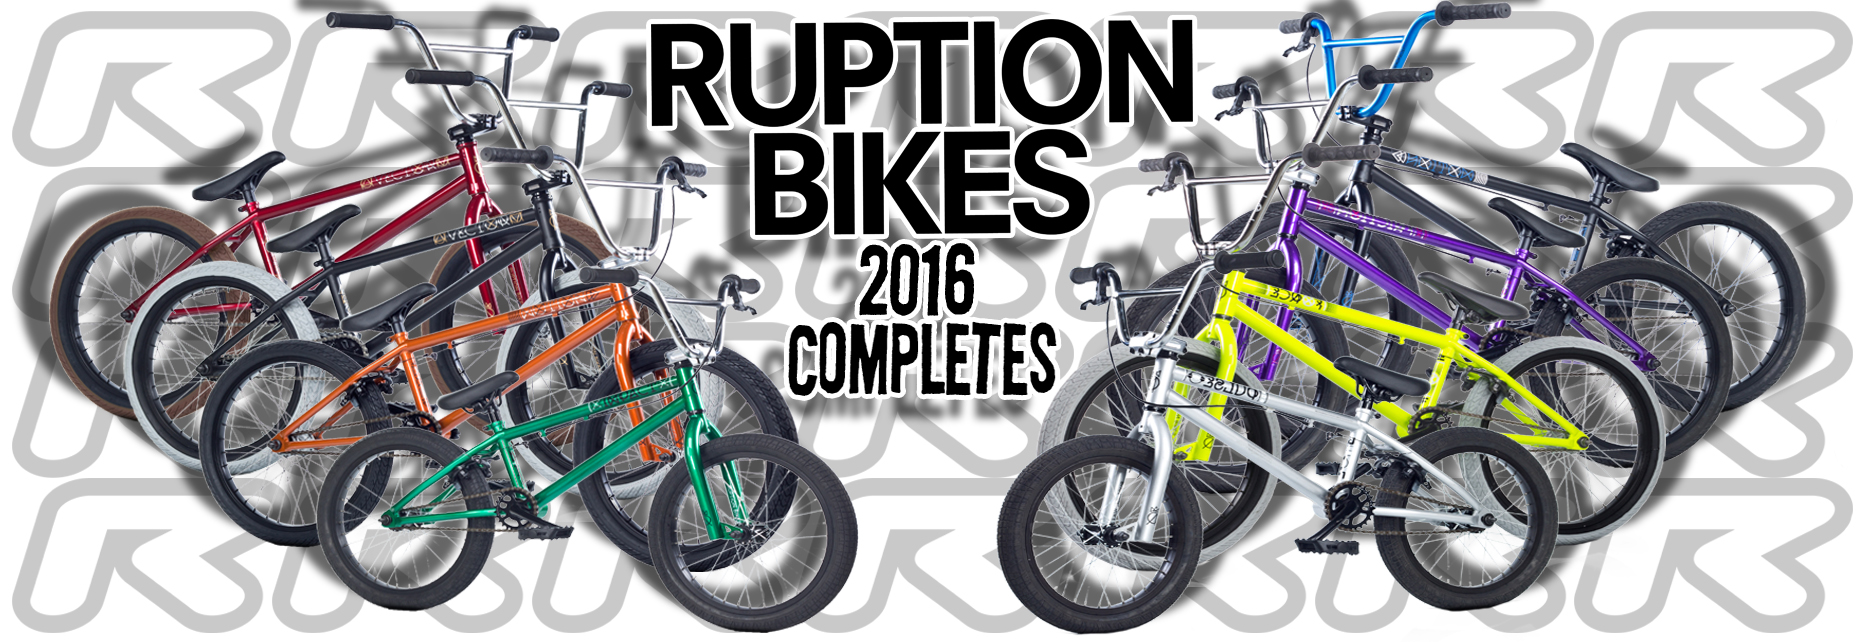 Ruption 2016 Complete Bike Range